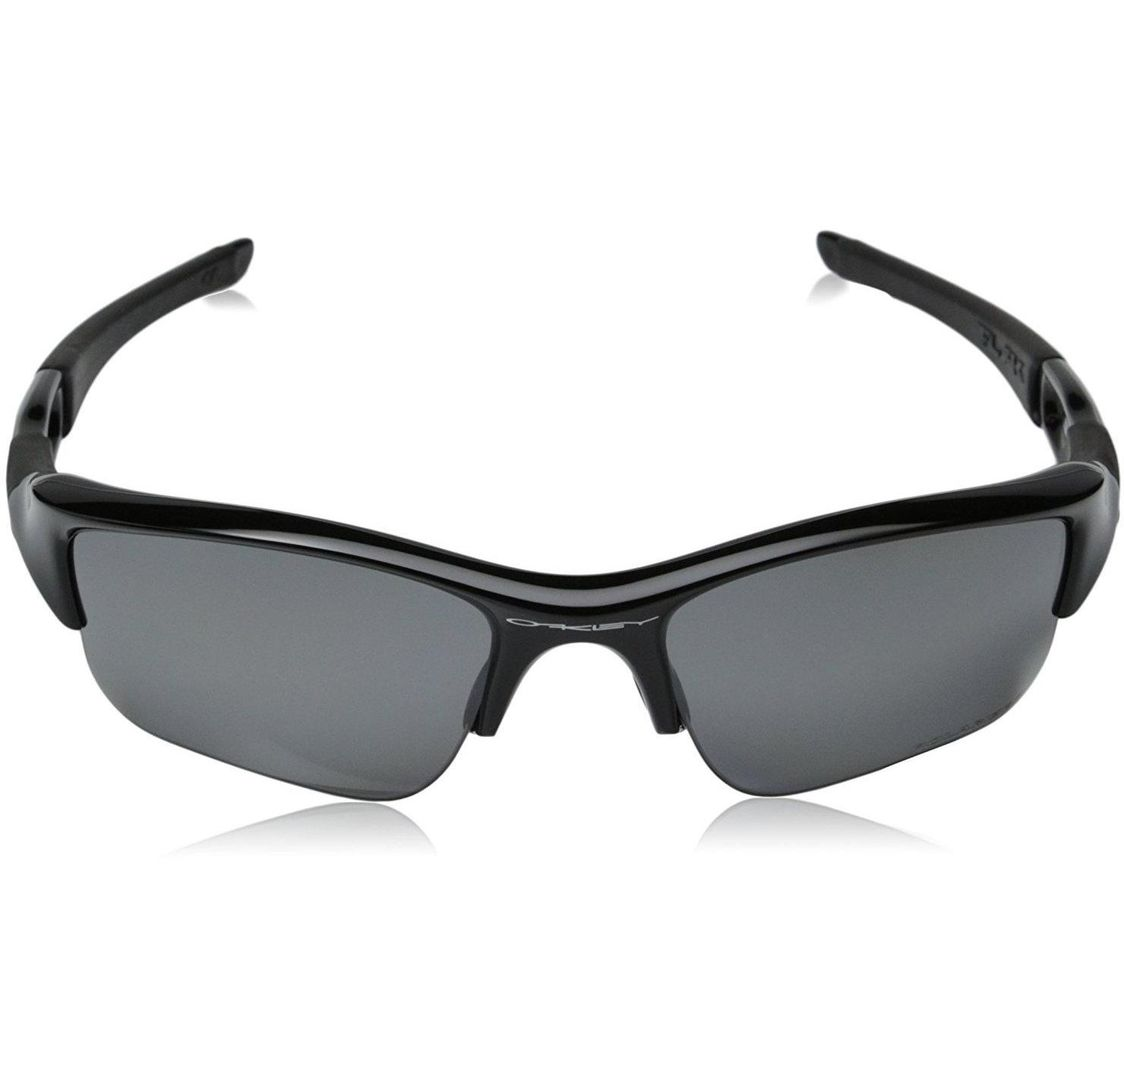 Buy Oakley Flak Jacket Xlj Polished Black/black Lens in Dubai at cheap price